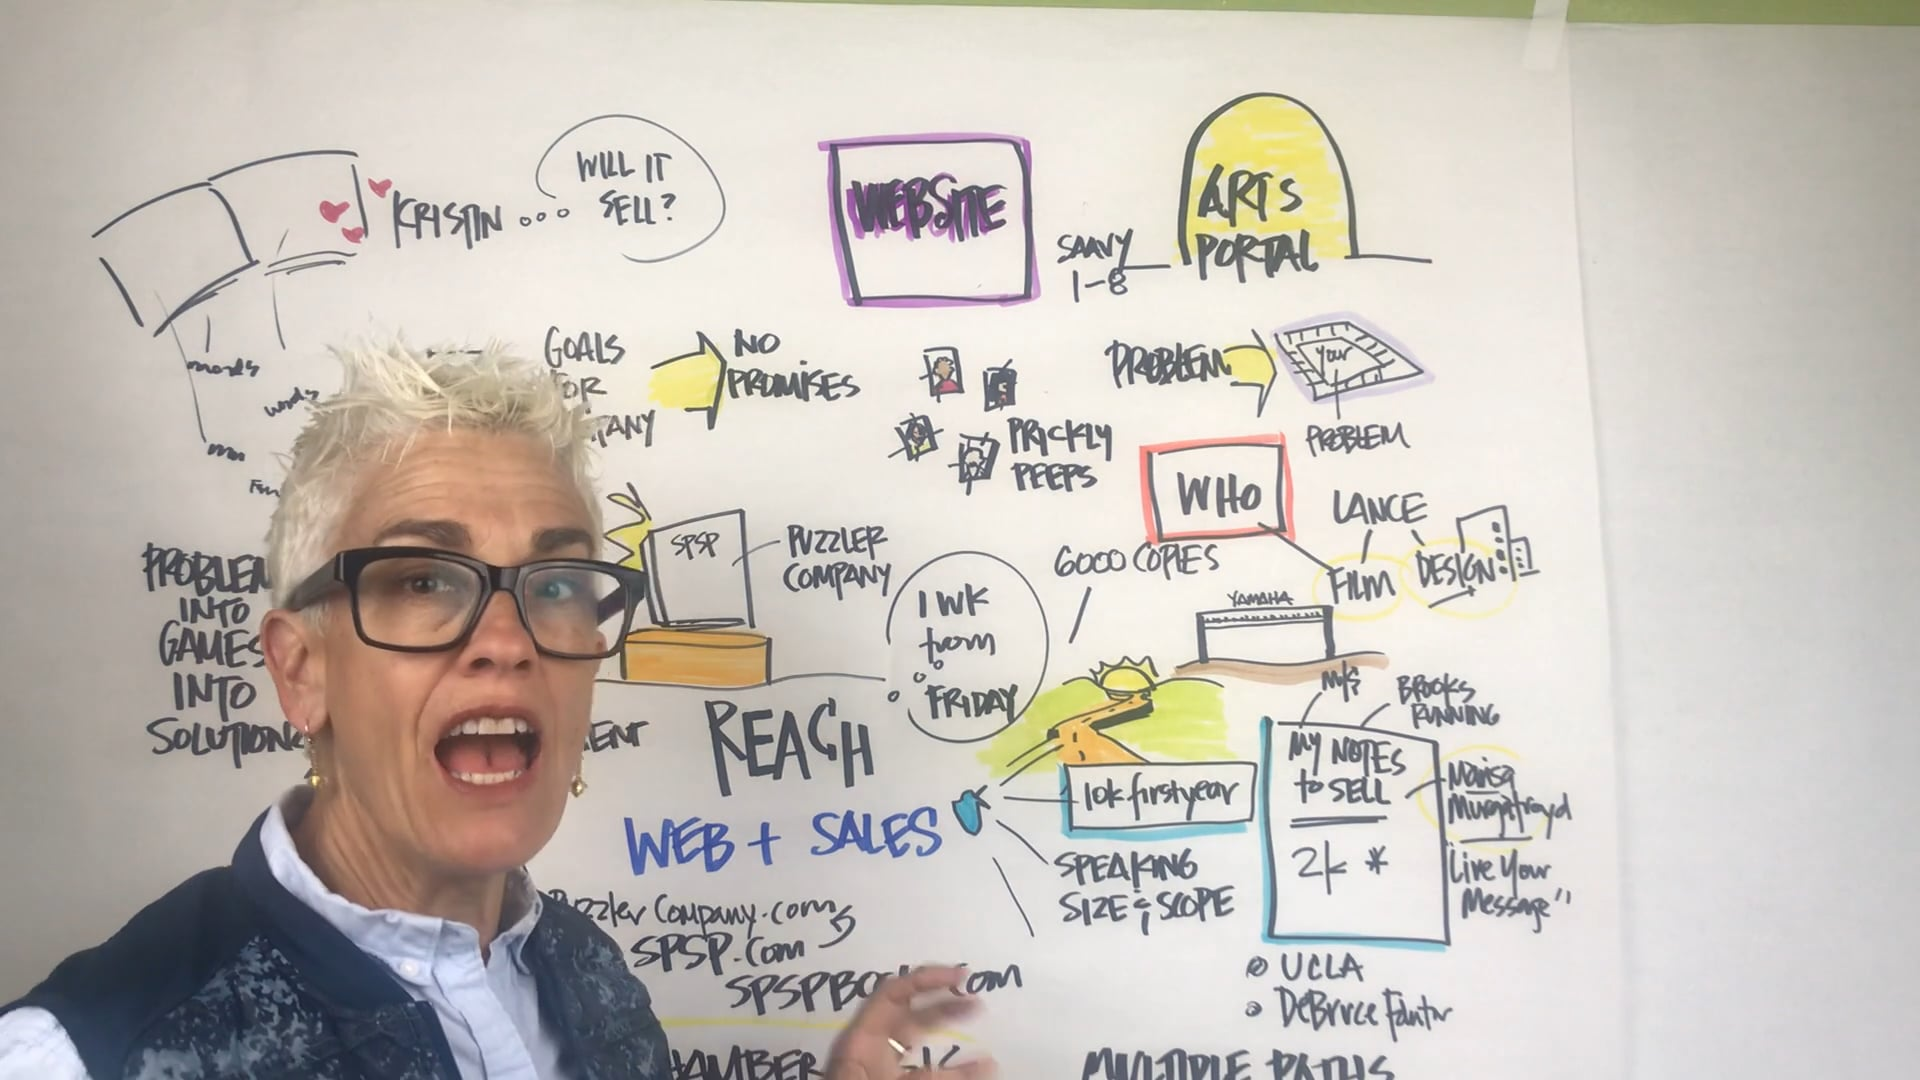 Take Visual Notes in Your Online Meetings